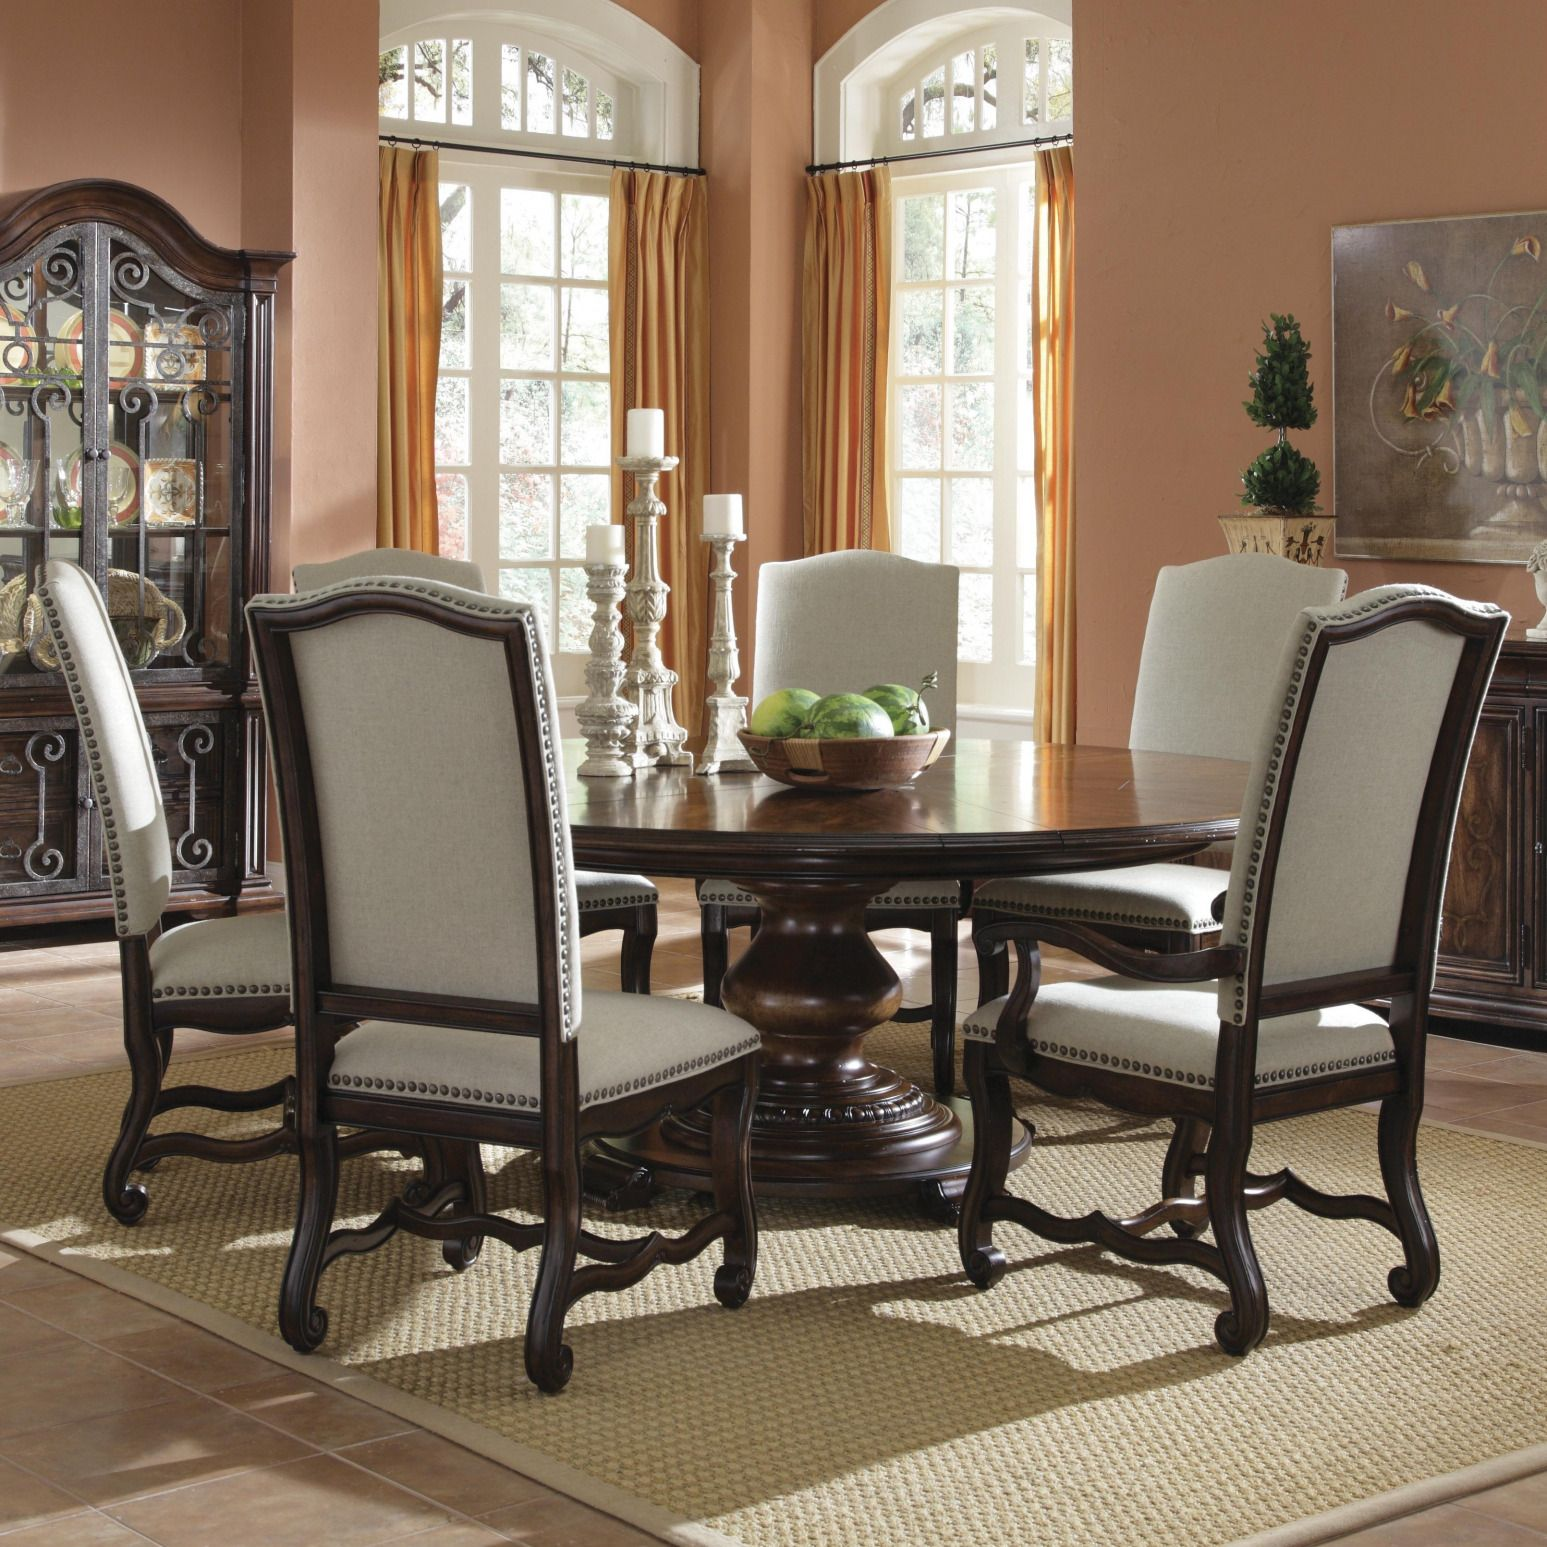 Pin by Annora on round end table Round dining room sets